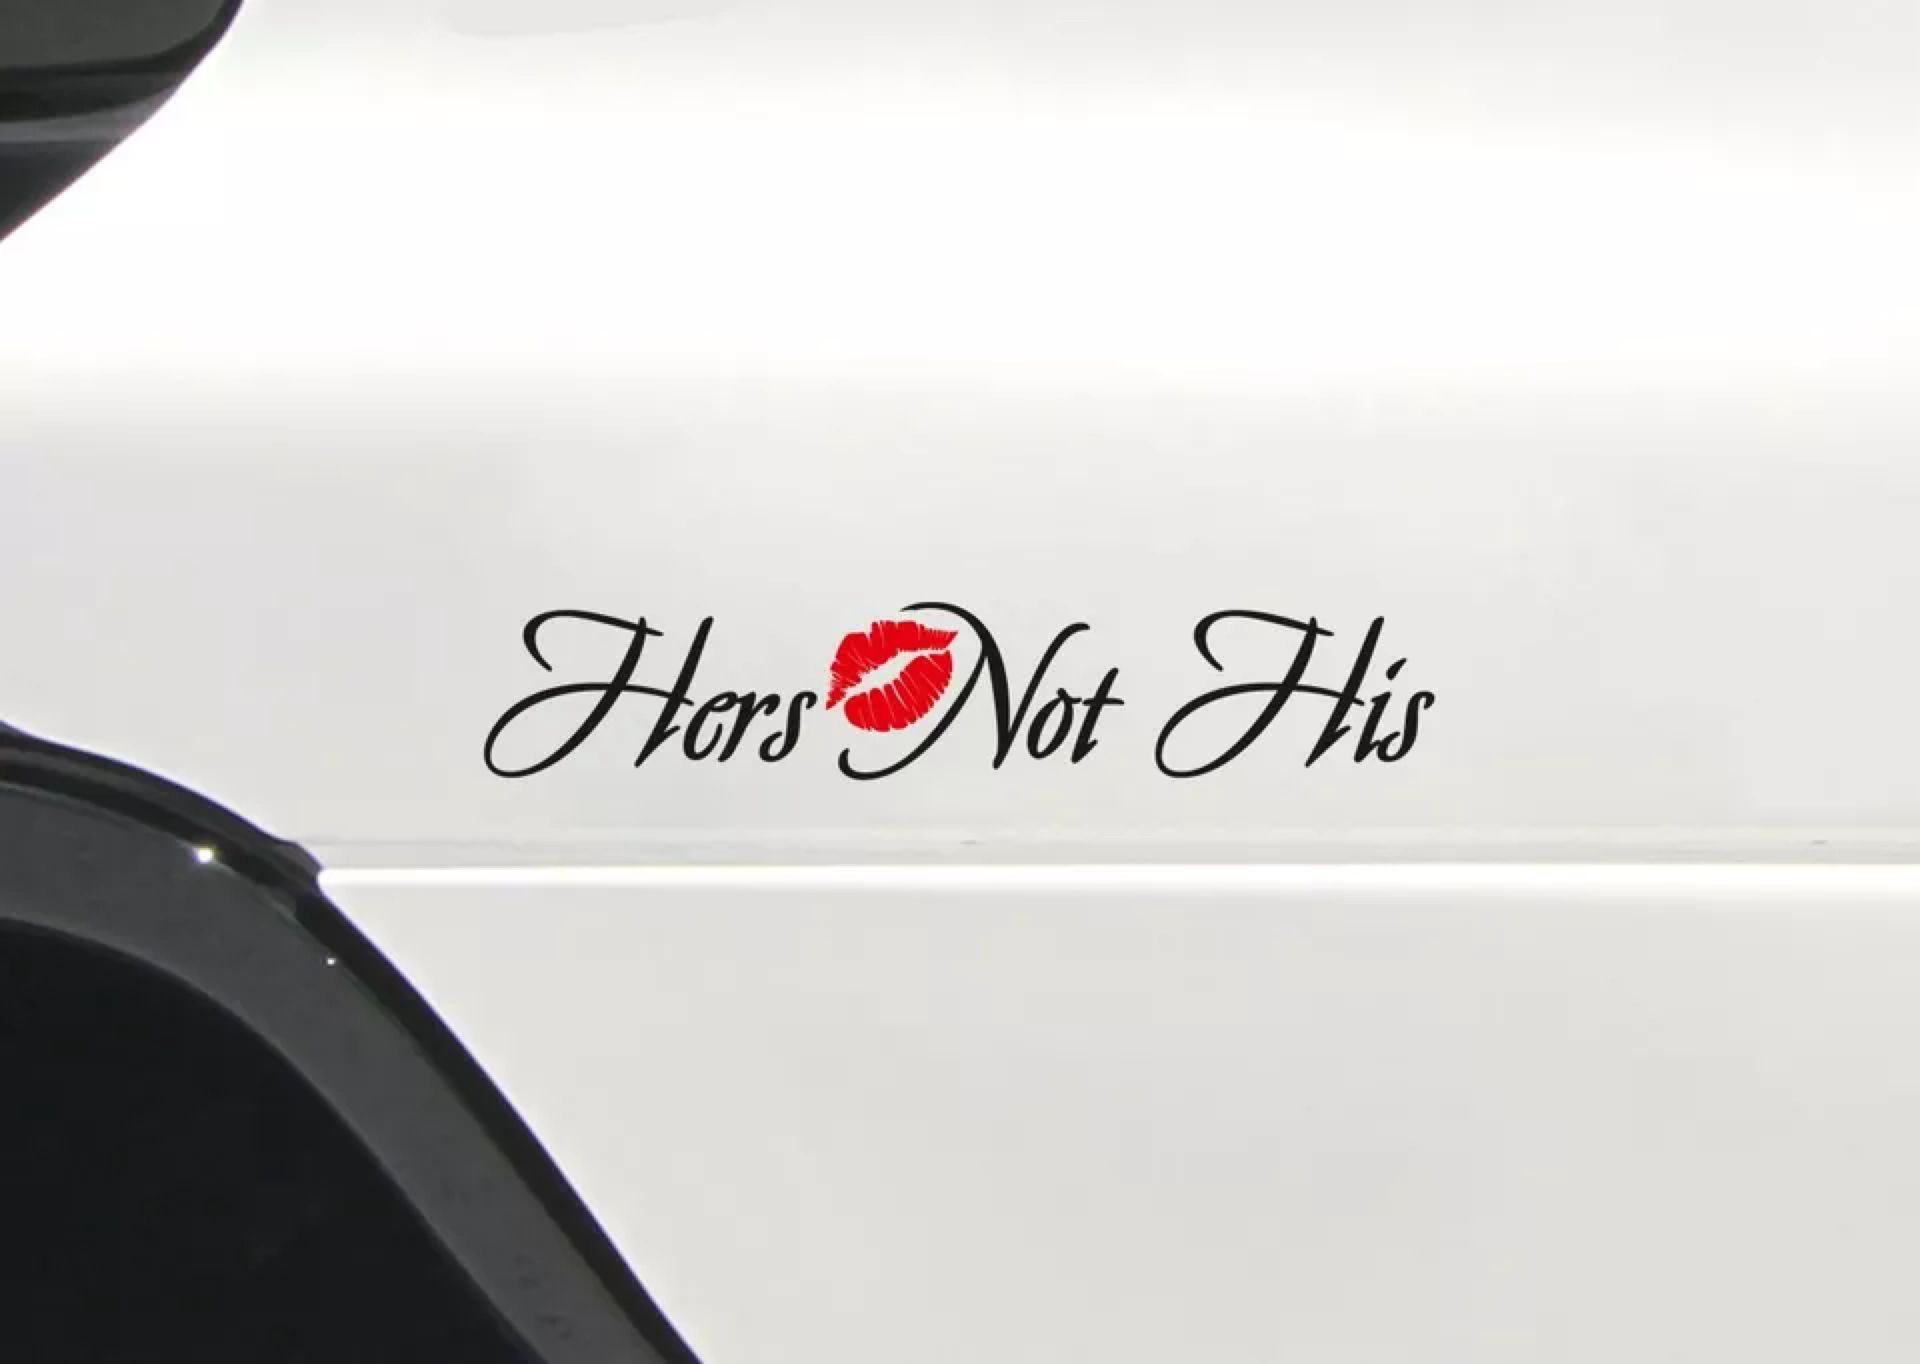 Hers Not His Funny Lady Driven Woman Girl Jdm Stance Car Vinyl Sticker Decal Jeep Stickers Truck Stickers Female Trucks [ 1364 x 1920 Pixel ]